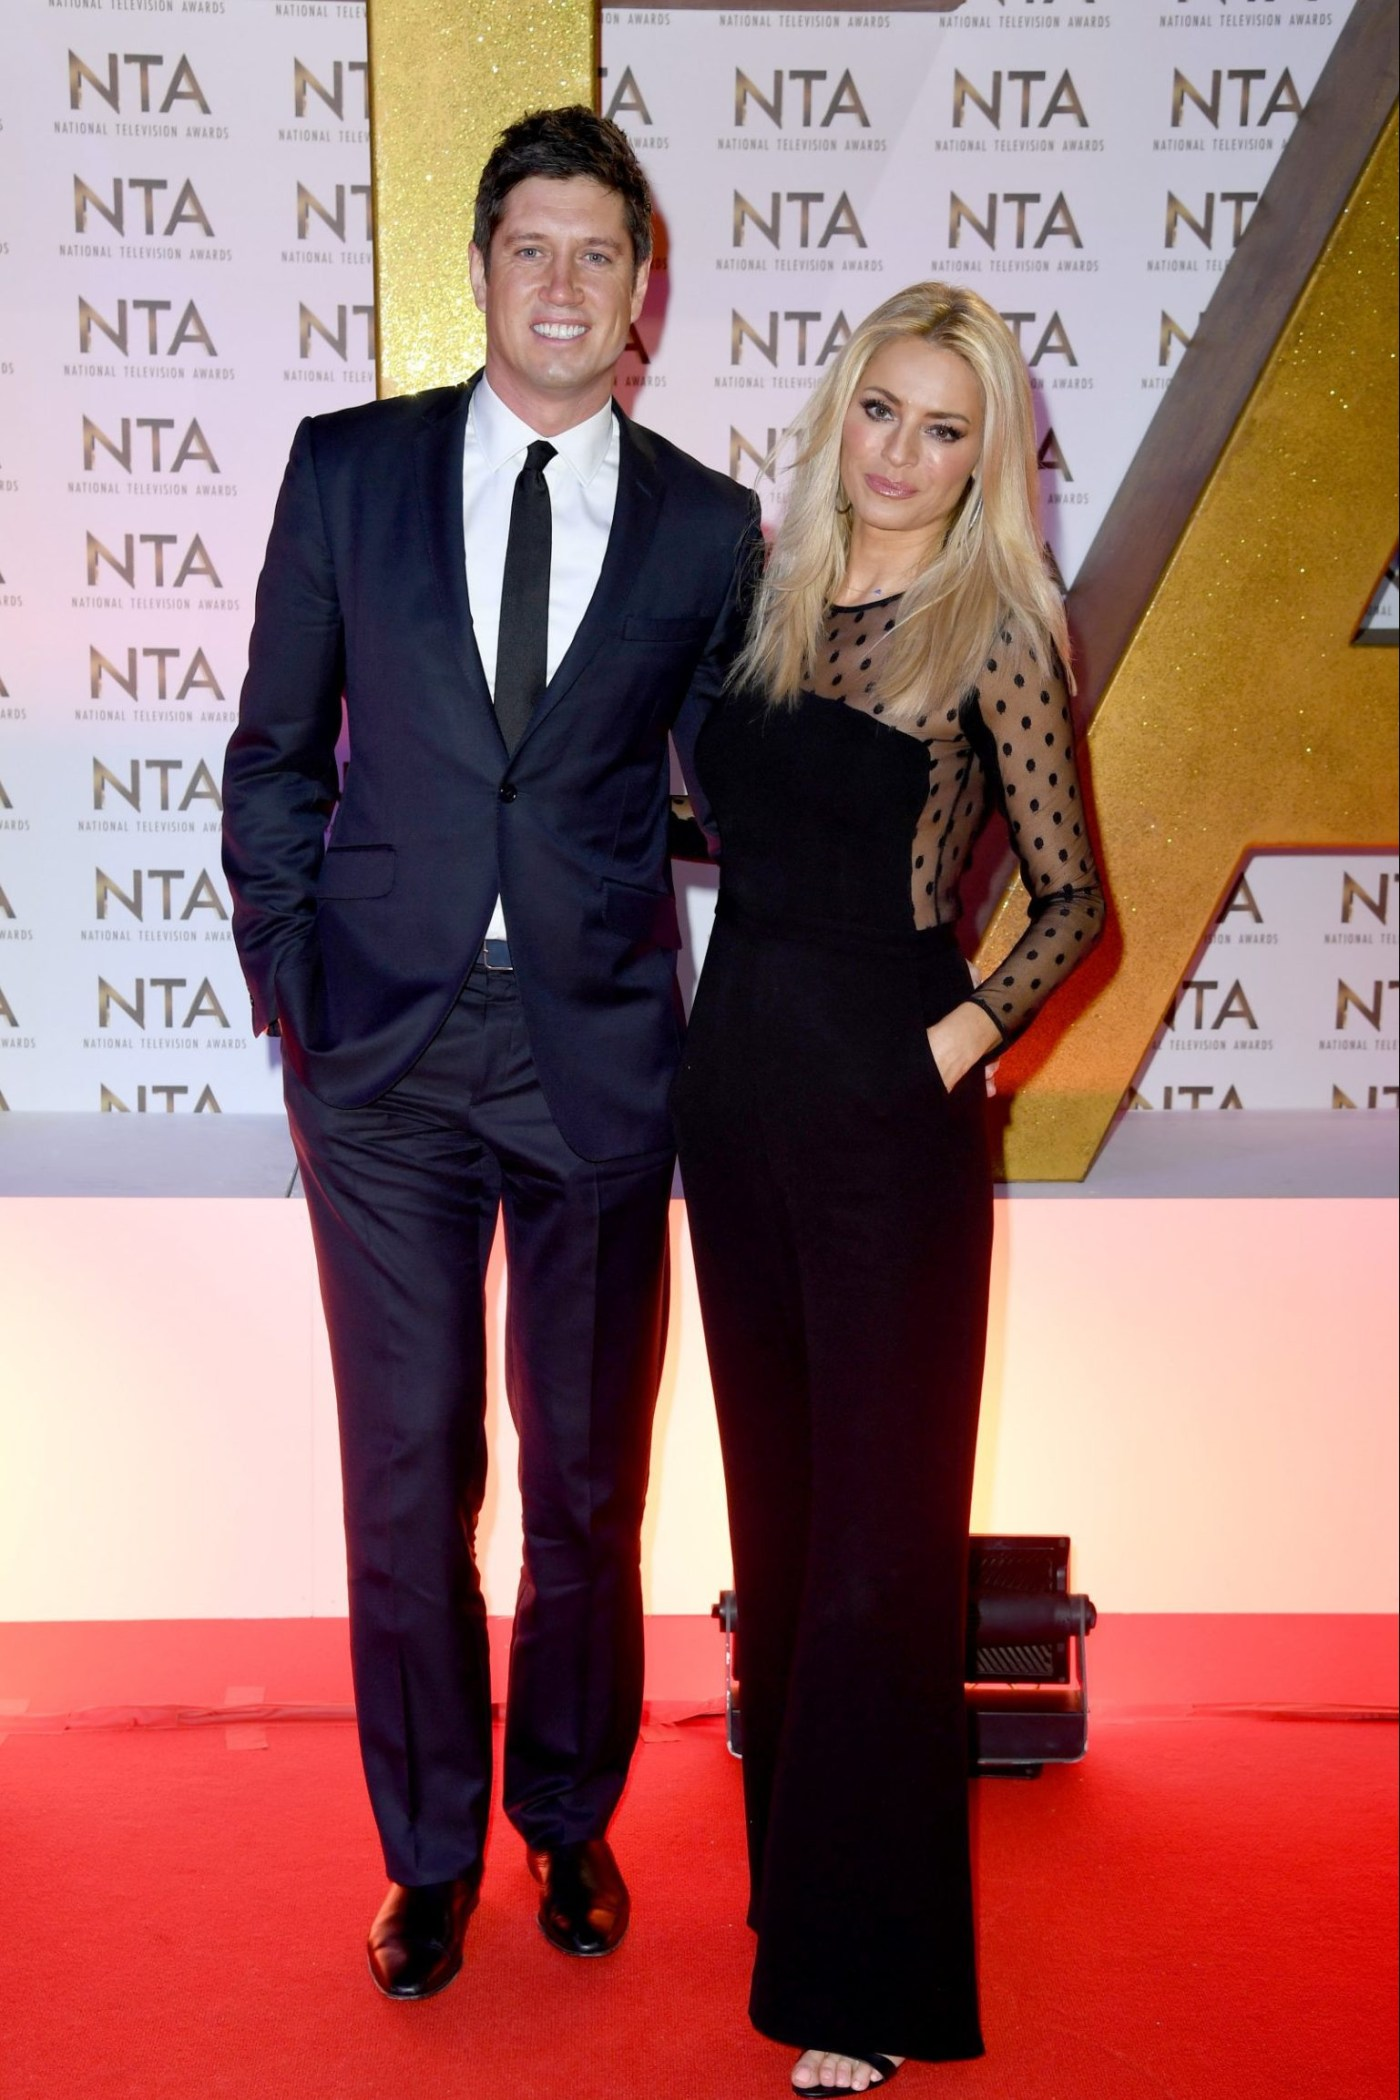 Mandatory Credit: Photo by Anthony Harvey/REX/Shutterstock (10537865en) Tess Daly and Vernon Kay 25th National Television Awards, Arrivals, O2, London, UK - 28 Jan 2020